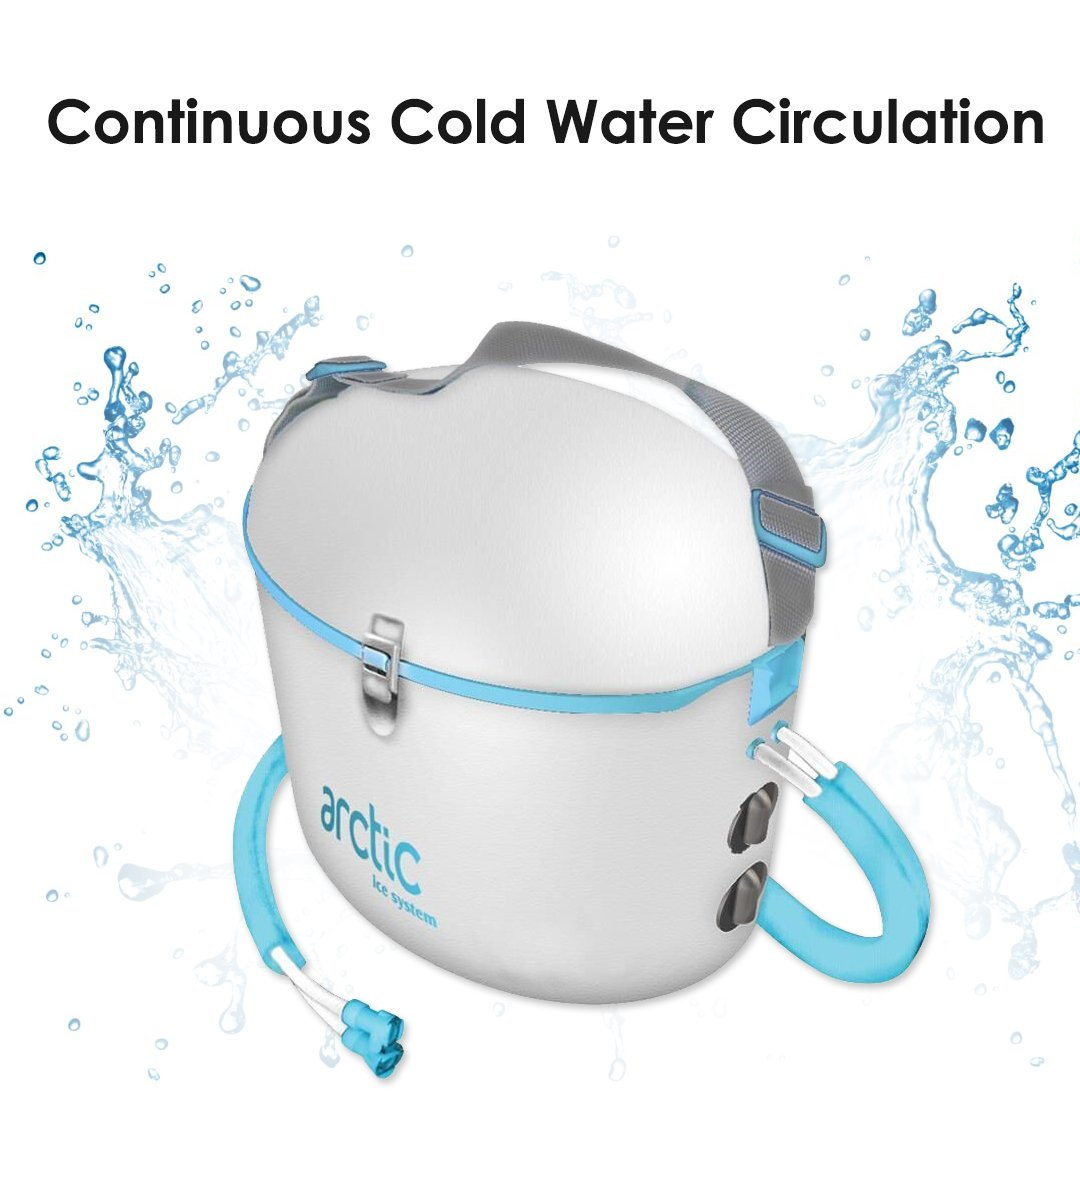 Cold Water Therapy Back Pad Accessory for Arctic Ice Machine - Circulating Personal Cooling Device for Back Pain, Aches, Swelling, Sprains, Inflammation, Injuries (Pad Only)